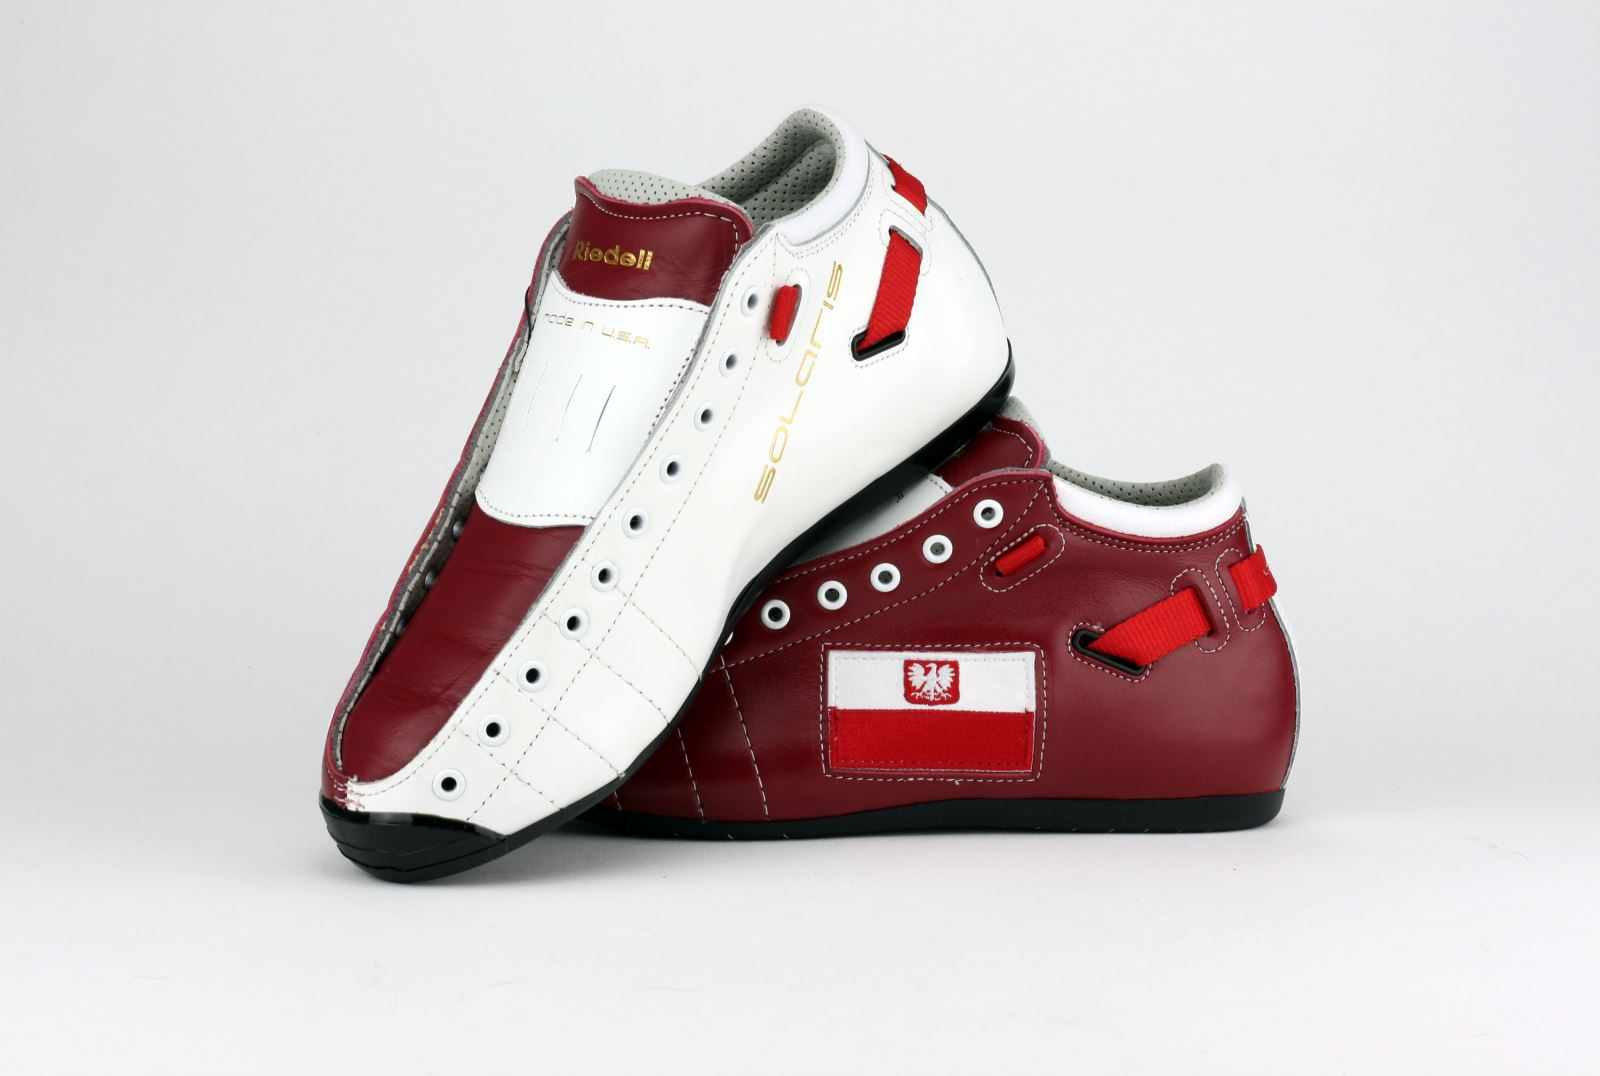 Riedell Superstar Hurtrude Stein's Custom Solaris - Team Poland Skates